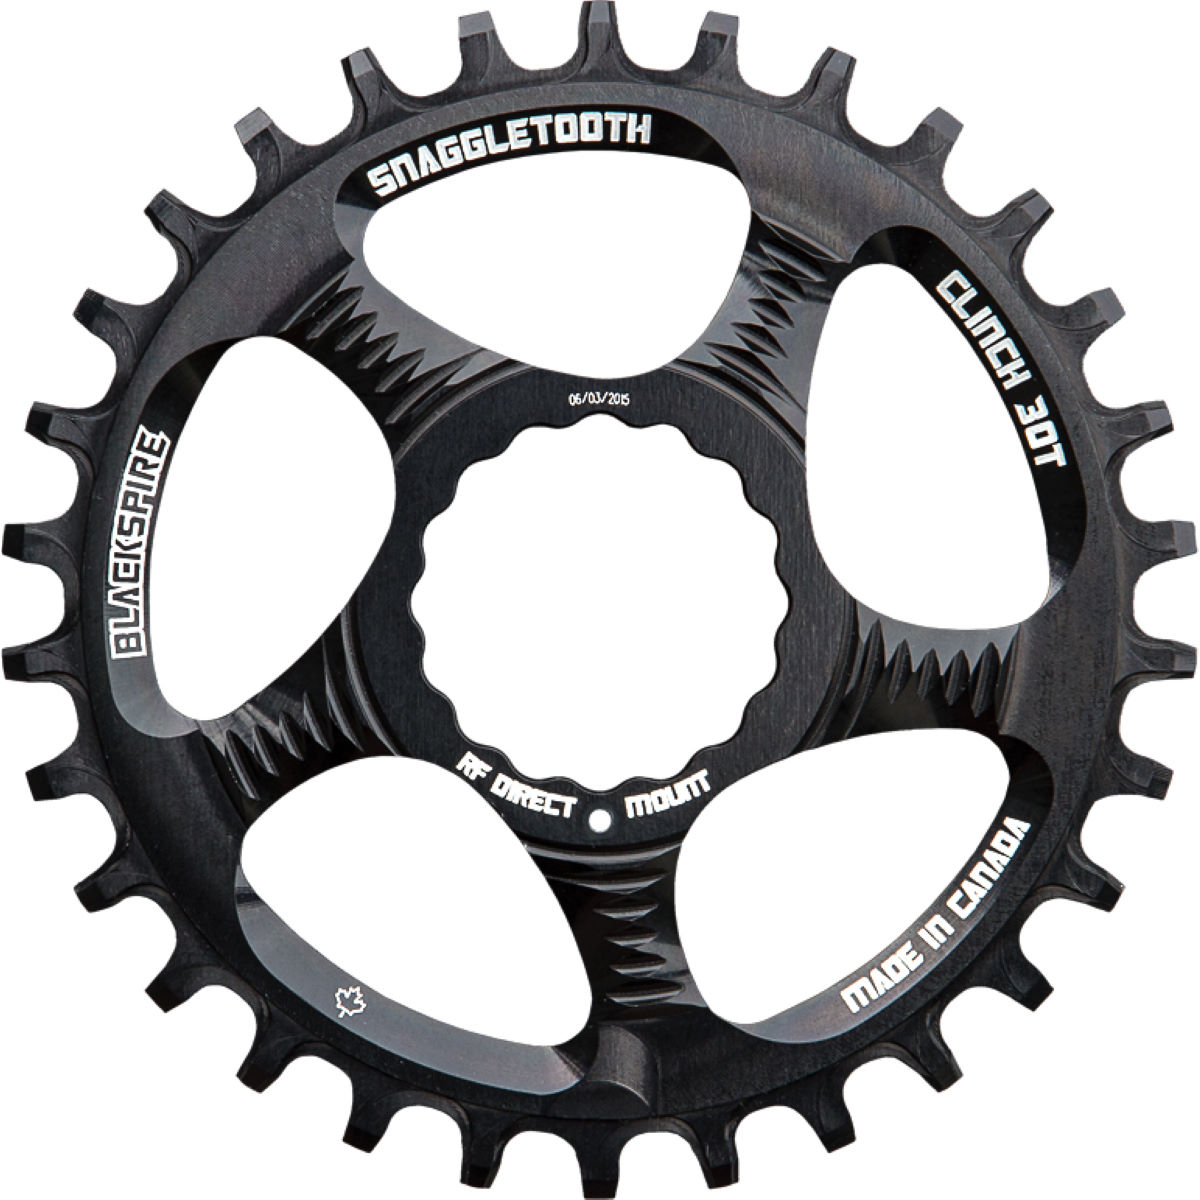 Blackspire Snaggletooth Cinch Chainring - Platos